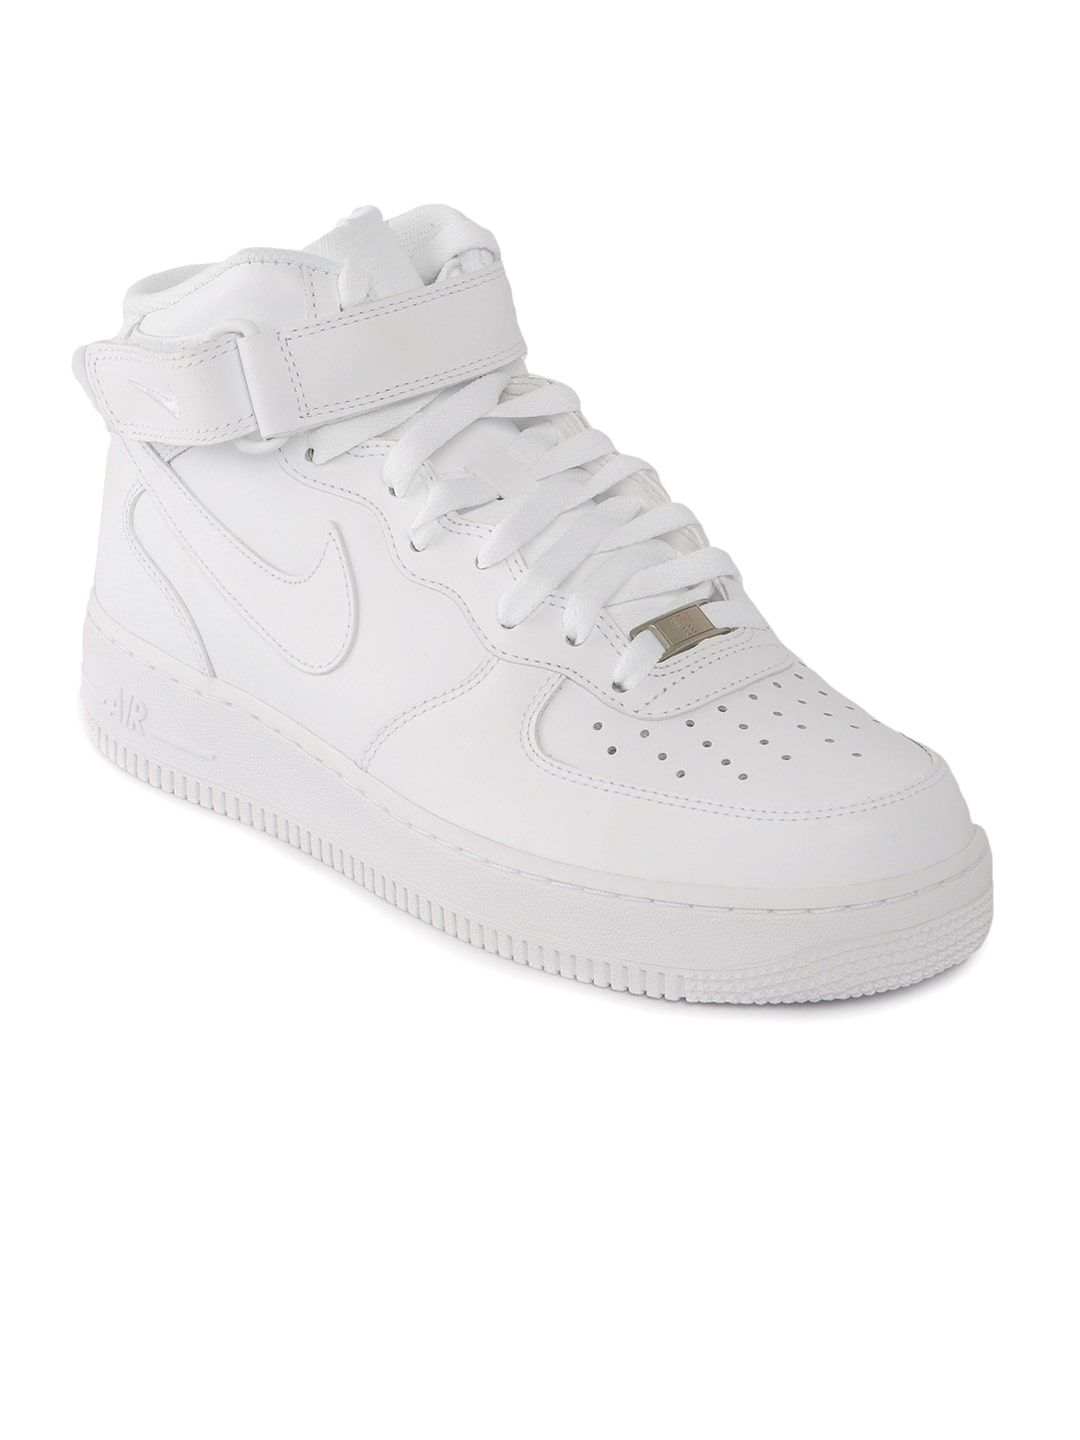 111 315123 Shoes Best Price In Men 1 White Nike Force India Air q5OwpqUd